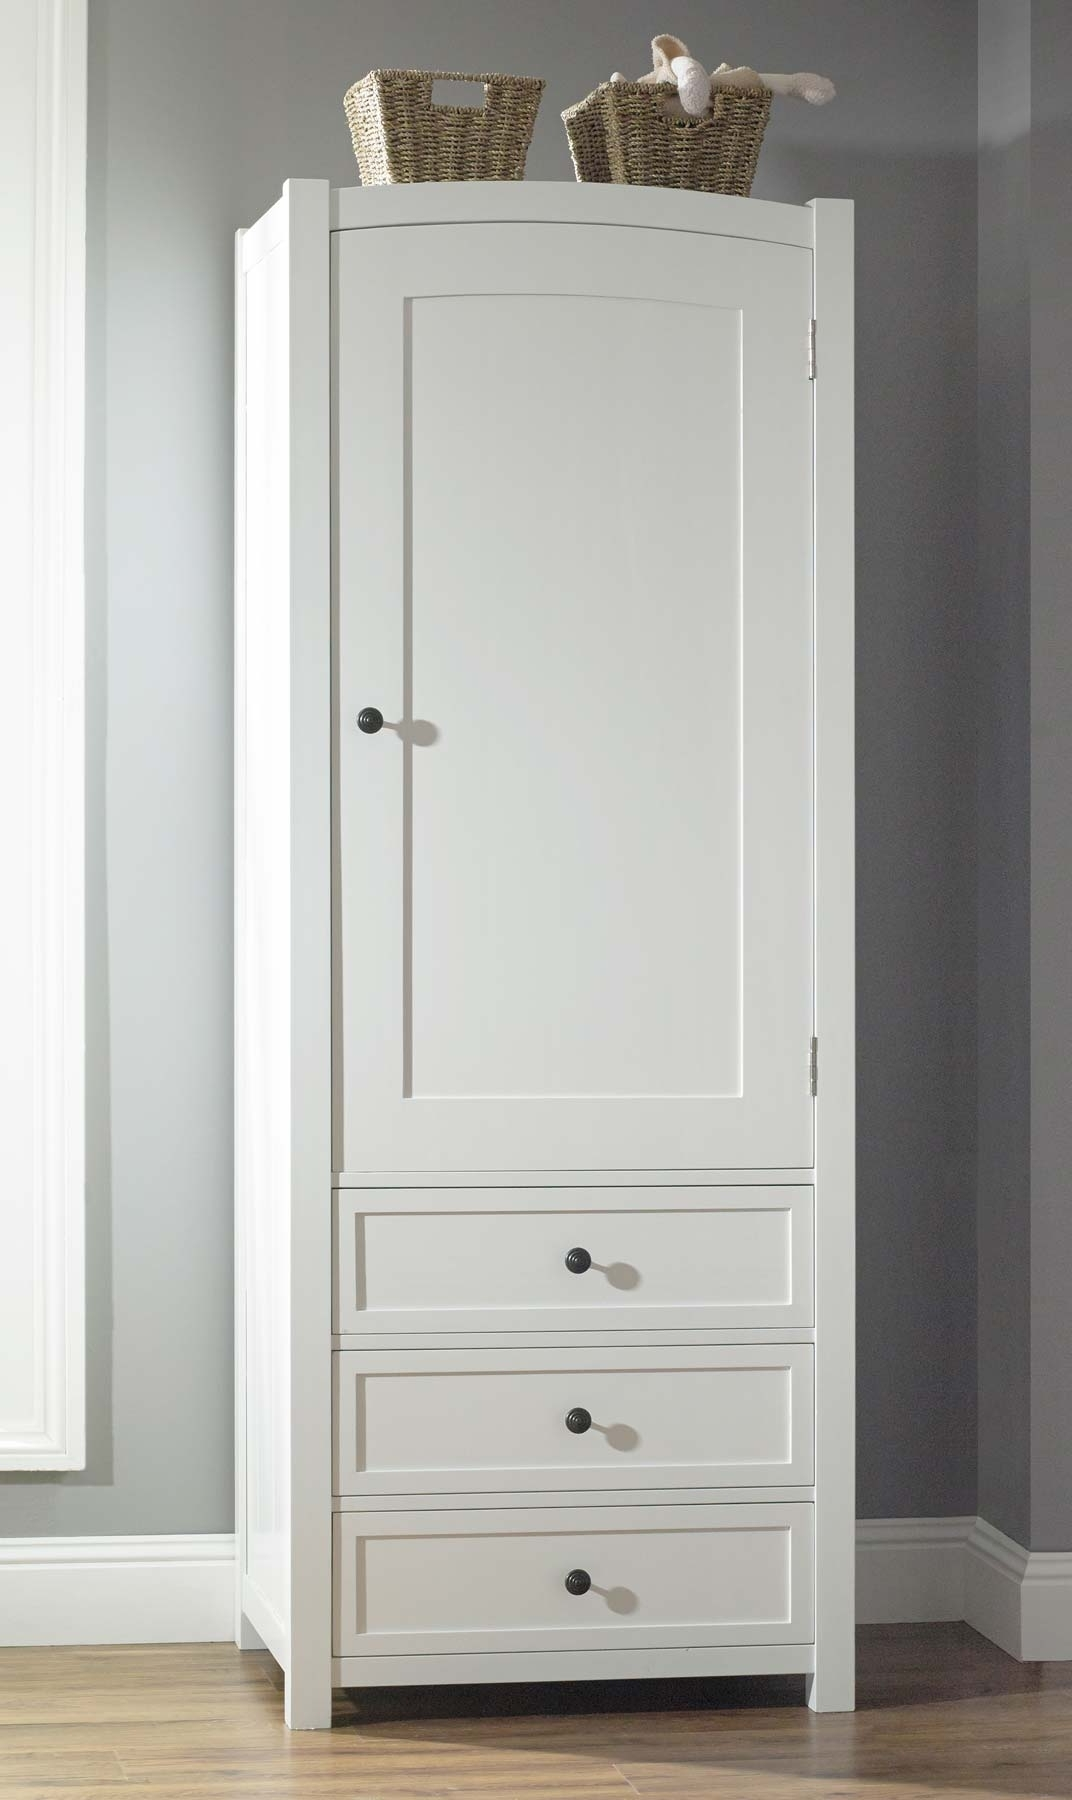 Most Popular Belgravia White Wardrobe Double With 2 Drawers Door Single Wood Throughout White Double Wardrobes With Drawers (View 13 of 15)